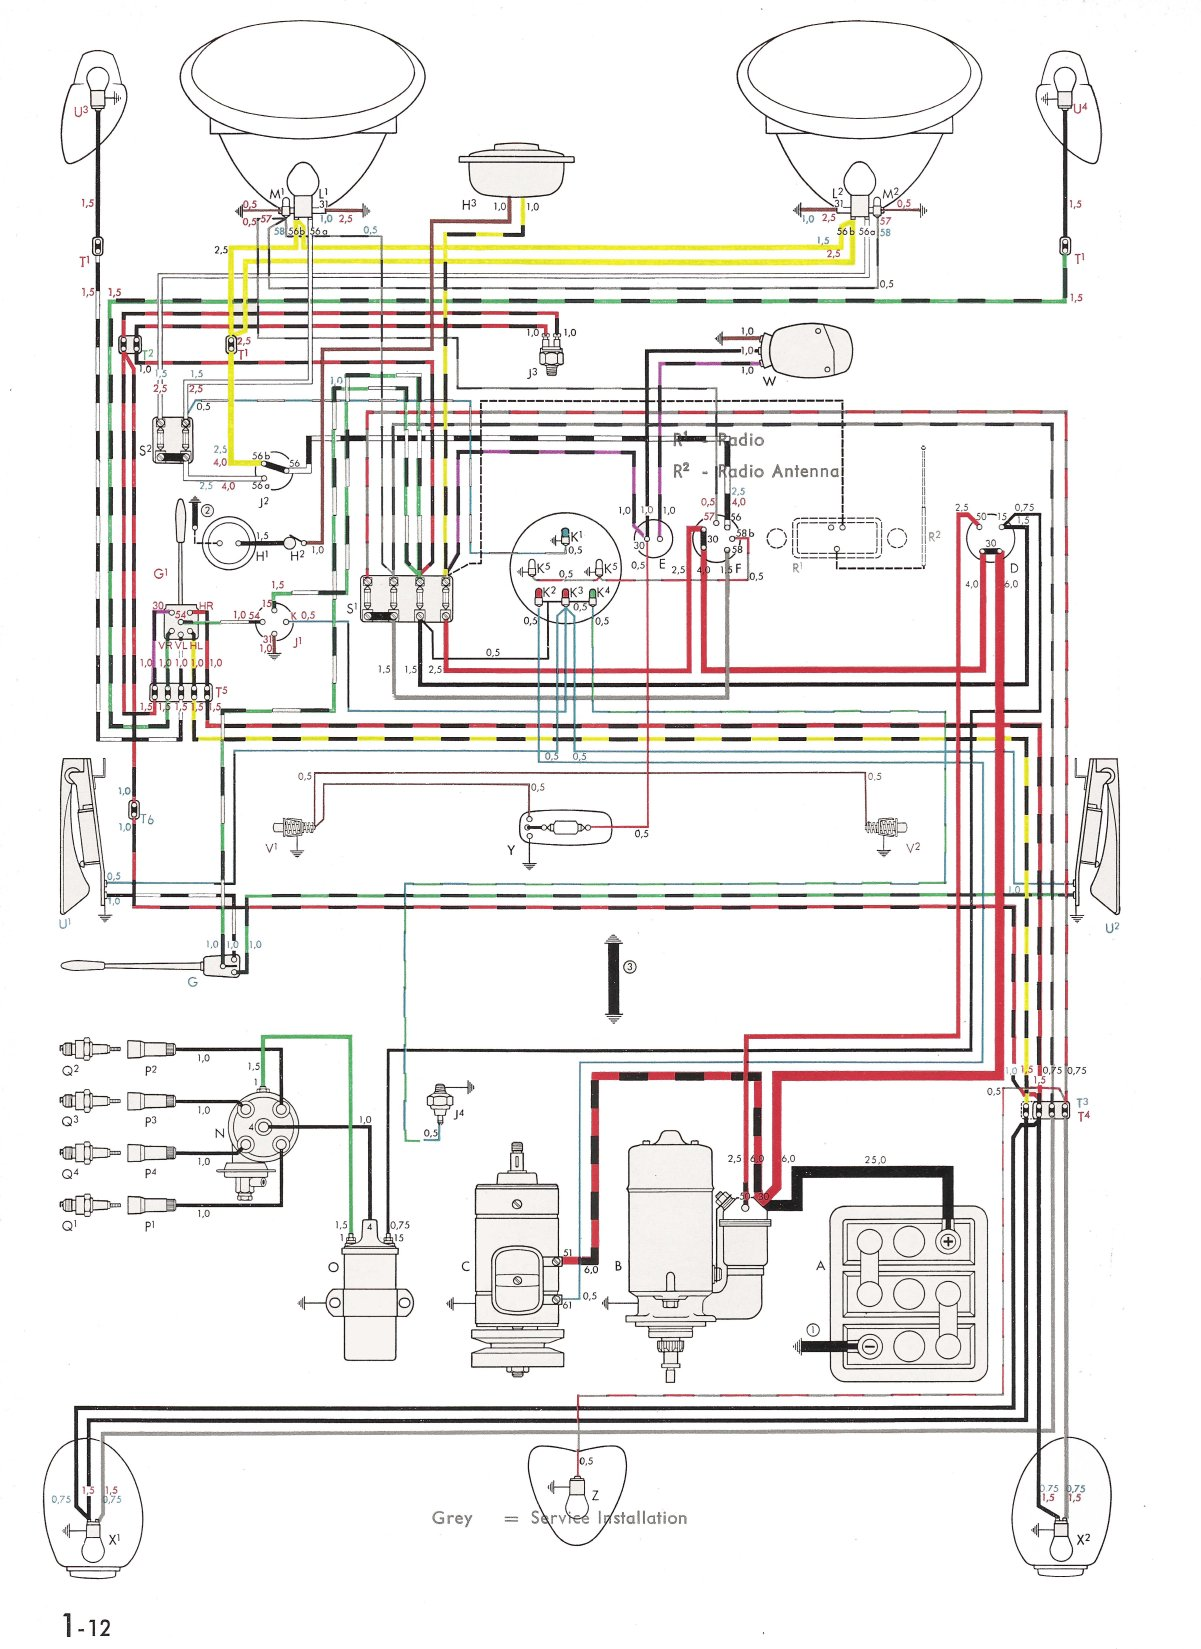 thesamba com type 1 wiring diagrams rh thesamba com